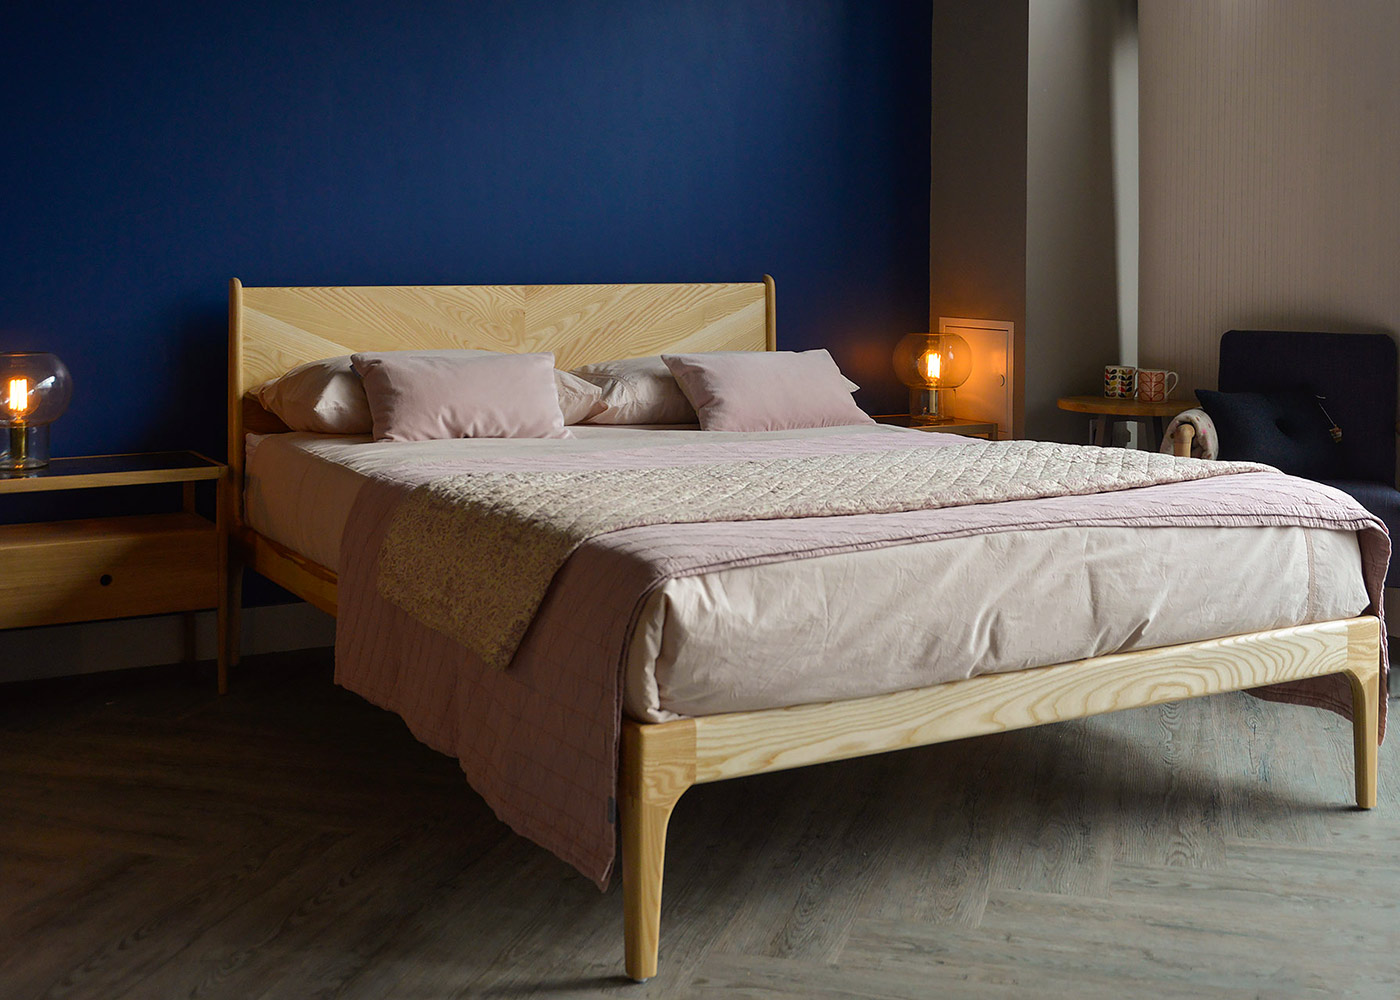 Solid wooden Hoxton bed, hand made in Britain and available to order in a choice of woods and bed sizes.